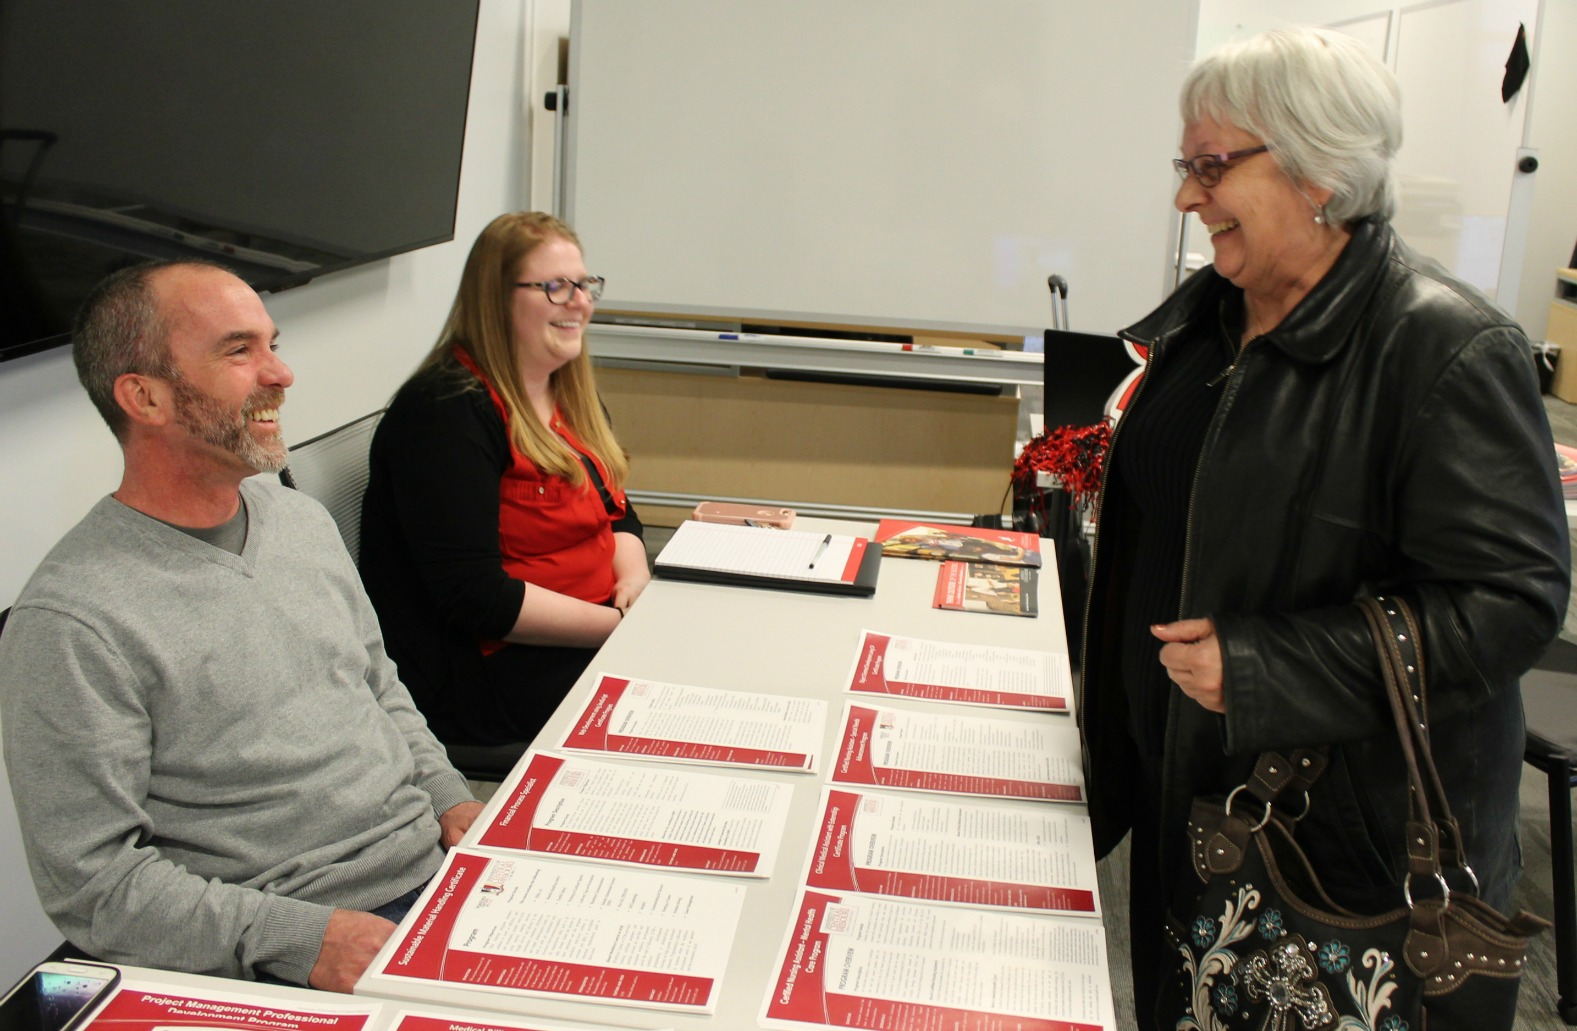 Scott Boyce and Katie Honomichl of the University of Central Missouri talk to Theresa Leaming during the Feb. 26 event.   (Photo courtesy UCM-Lee's Summit)